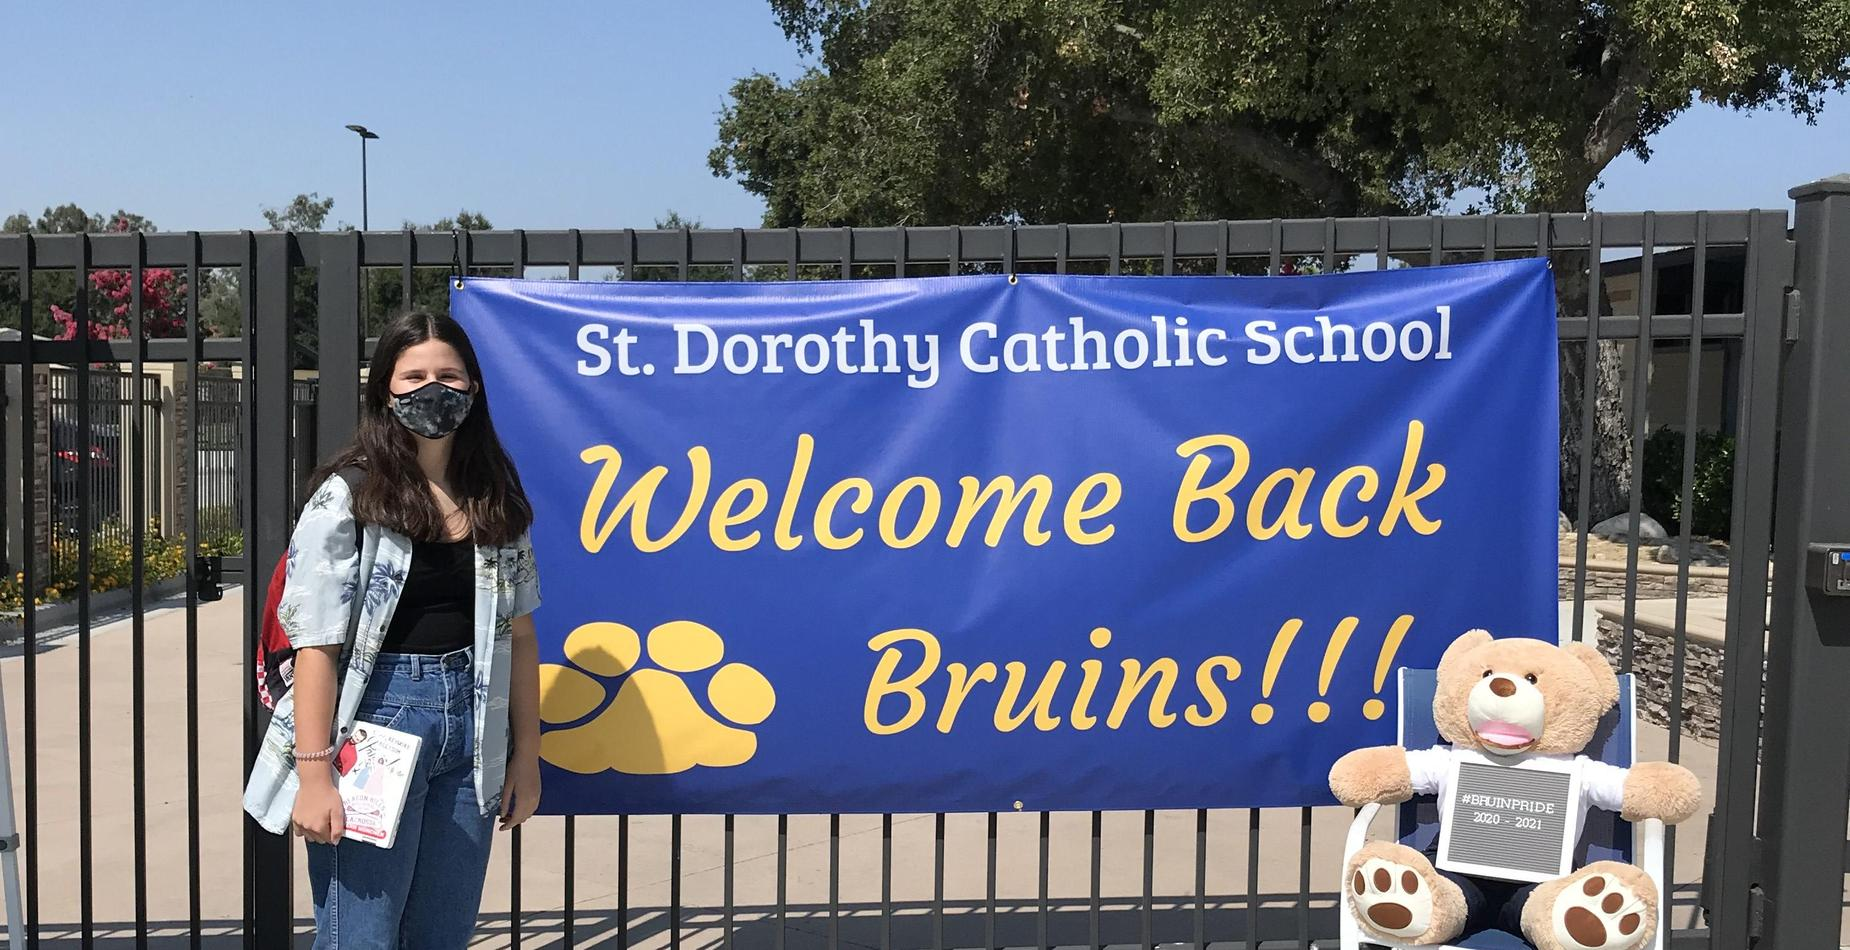 Students welcomed back to school